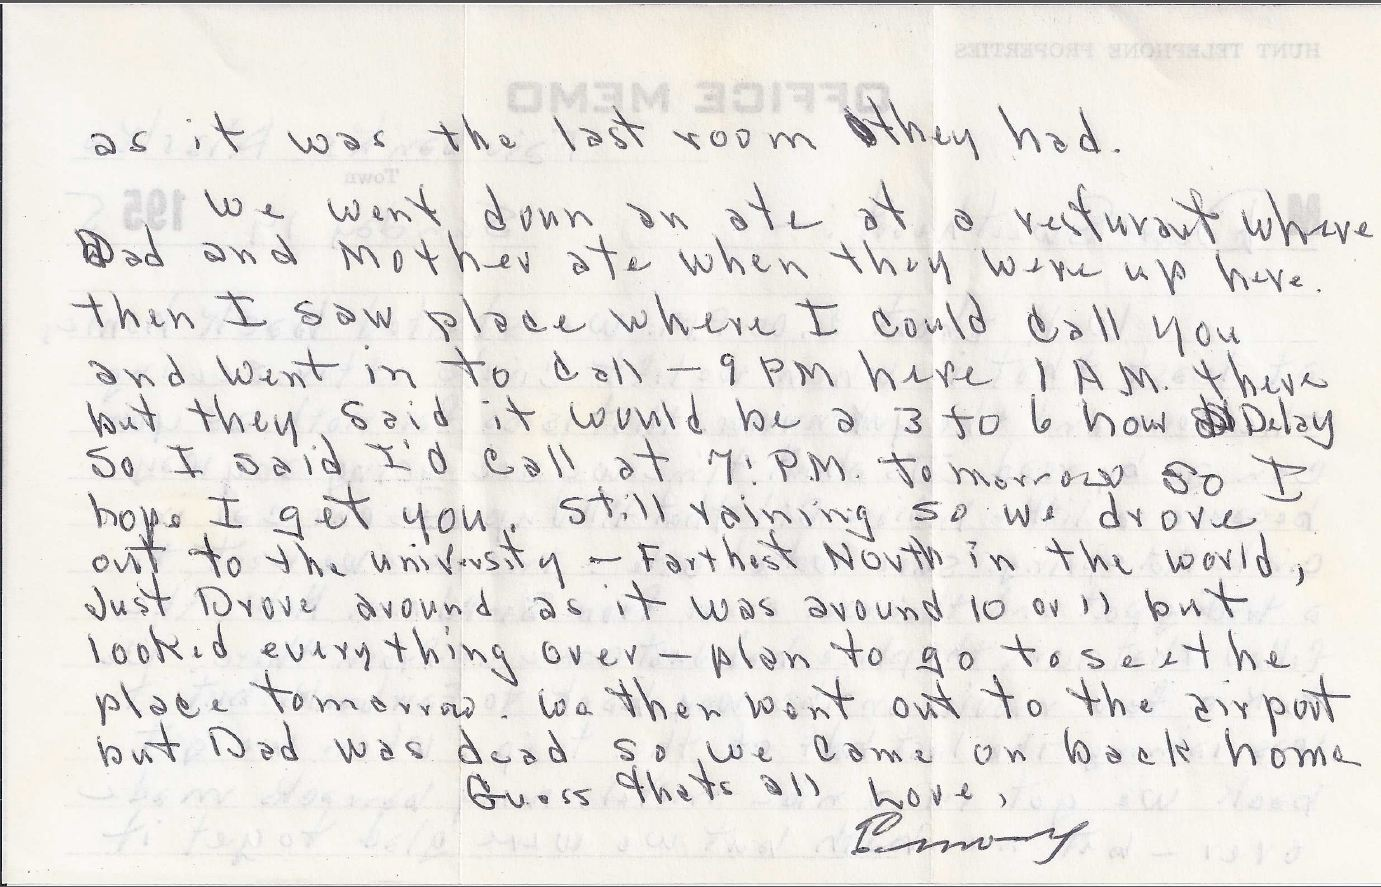 Letter sent from my husband's grandfather to his wife from Alaska in 1955